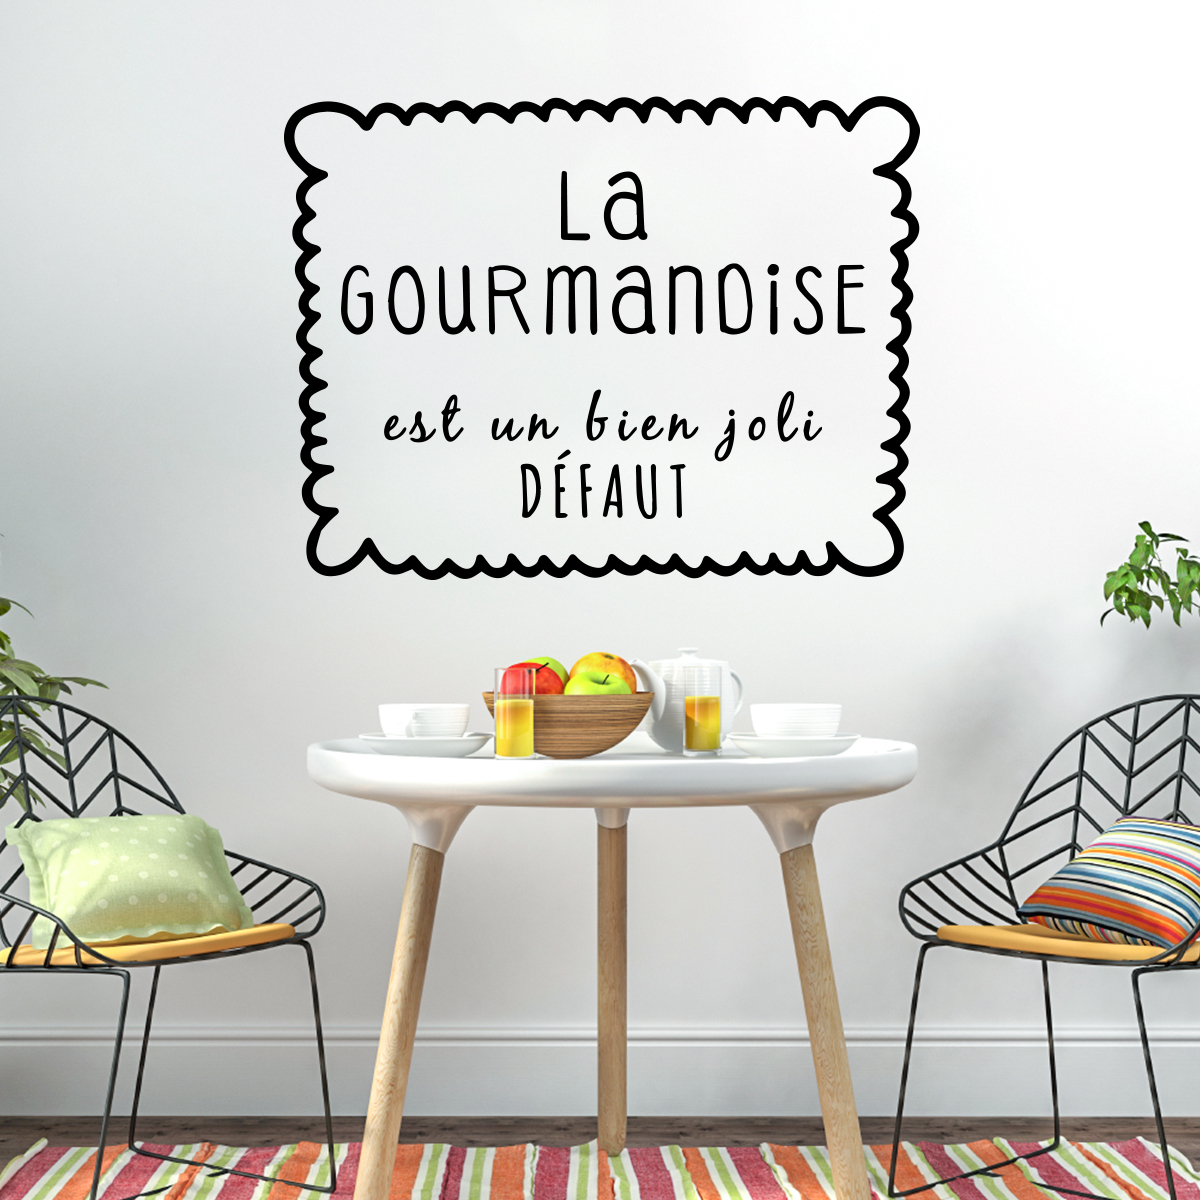 sticker citation la gourmandise est un bien joli d faut. Black Bedroom Furniture Sets. Home Design Ideas